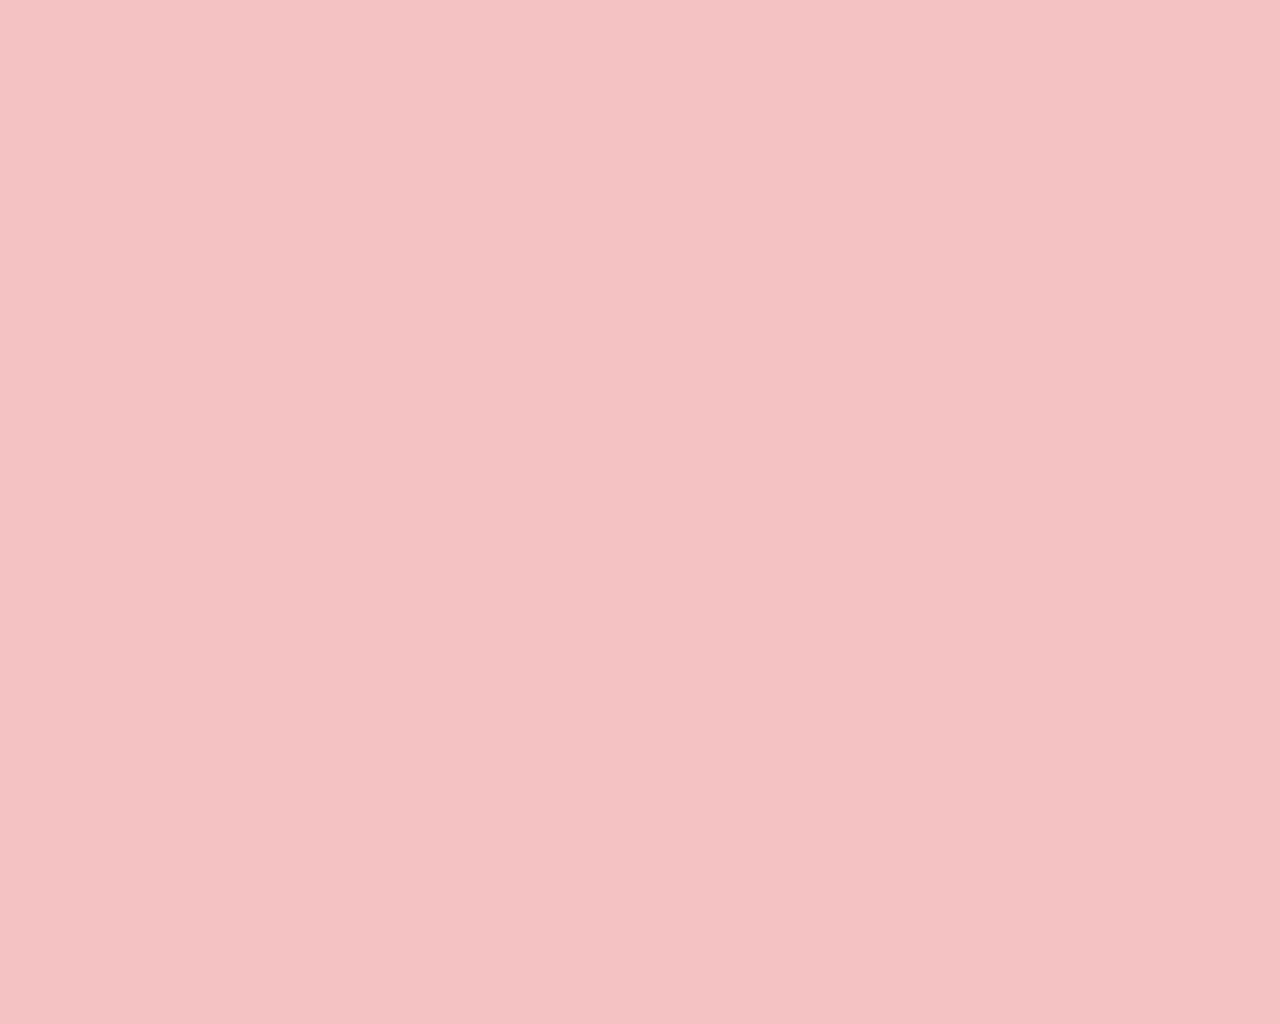 1280x1024 Baby Pink Solid Color Background